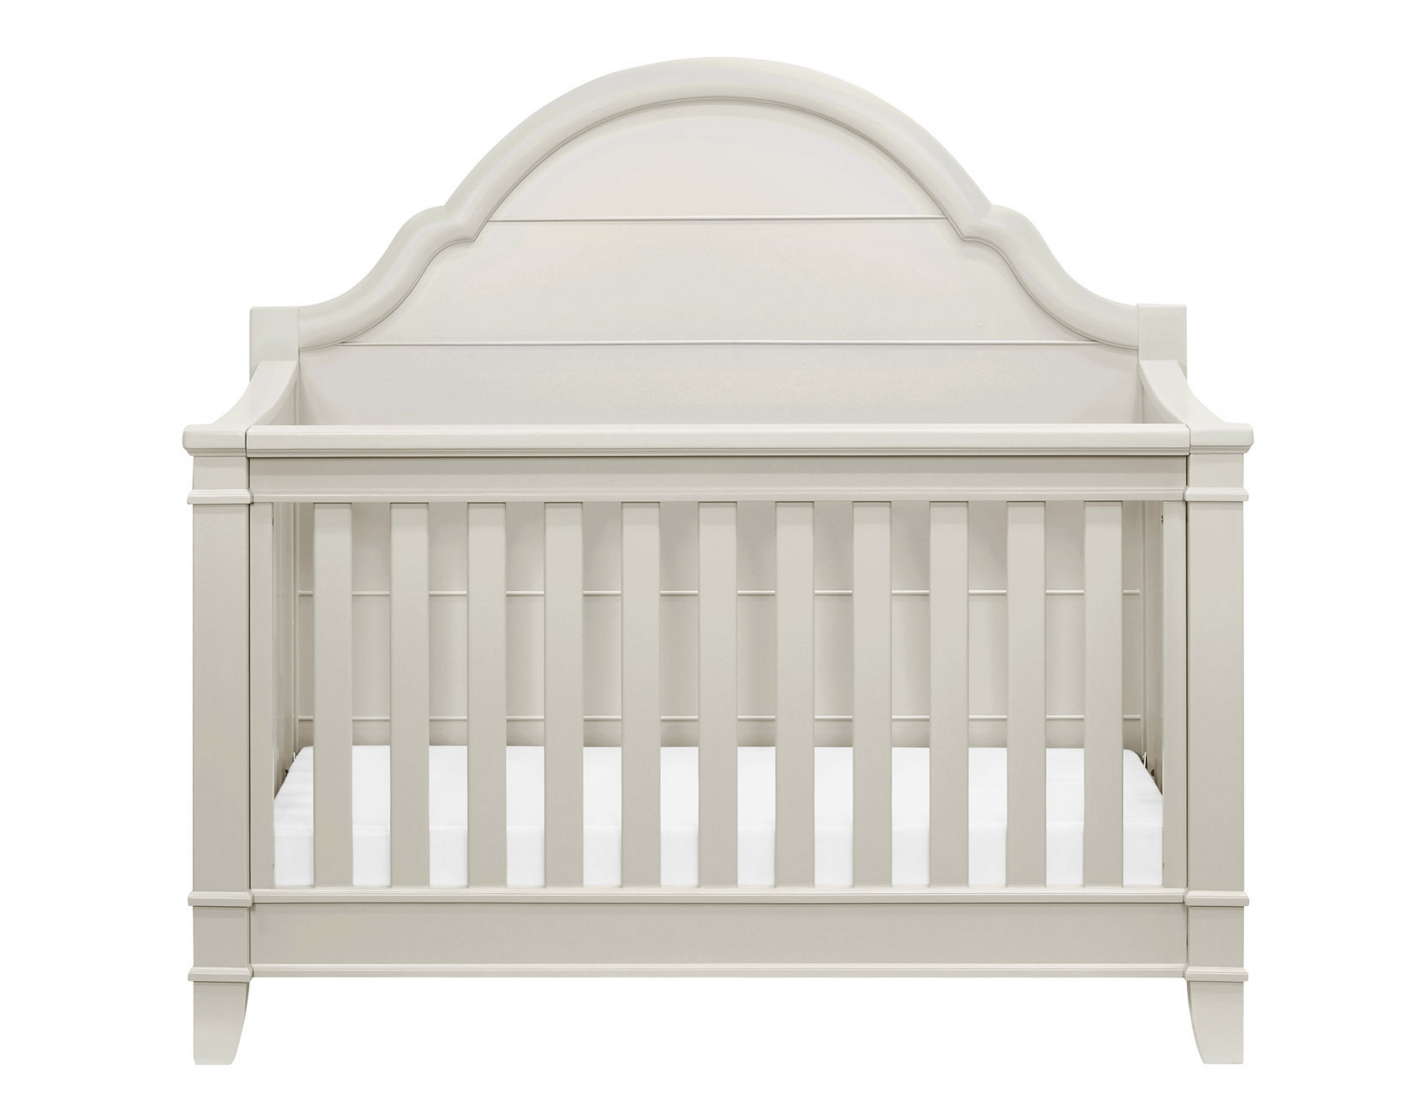 Mdb Sullivan 4 In 1 Convertible Crib Kids Furniture In